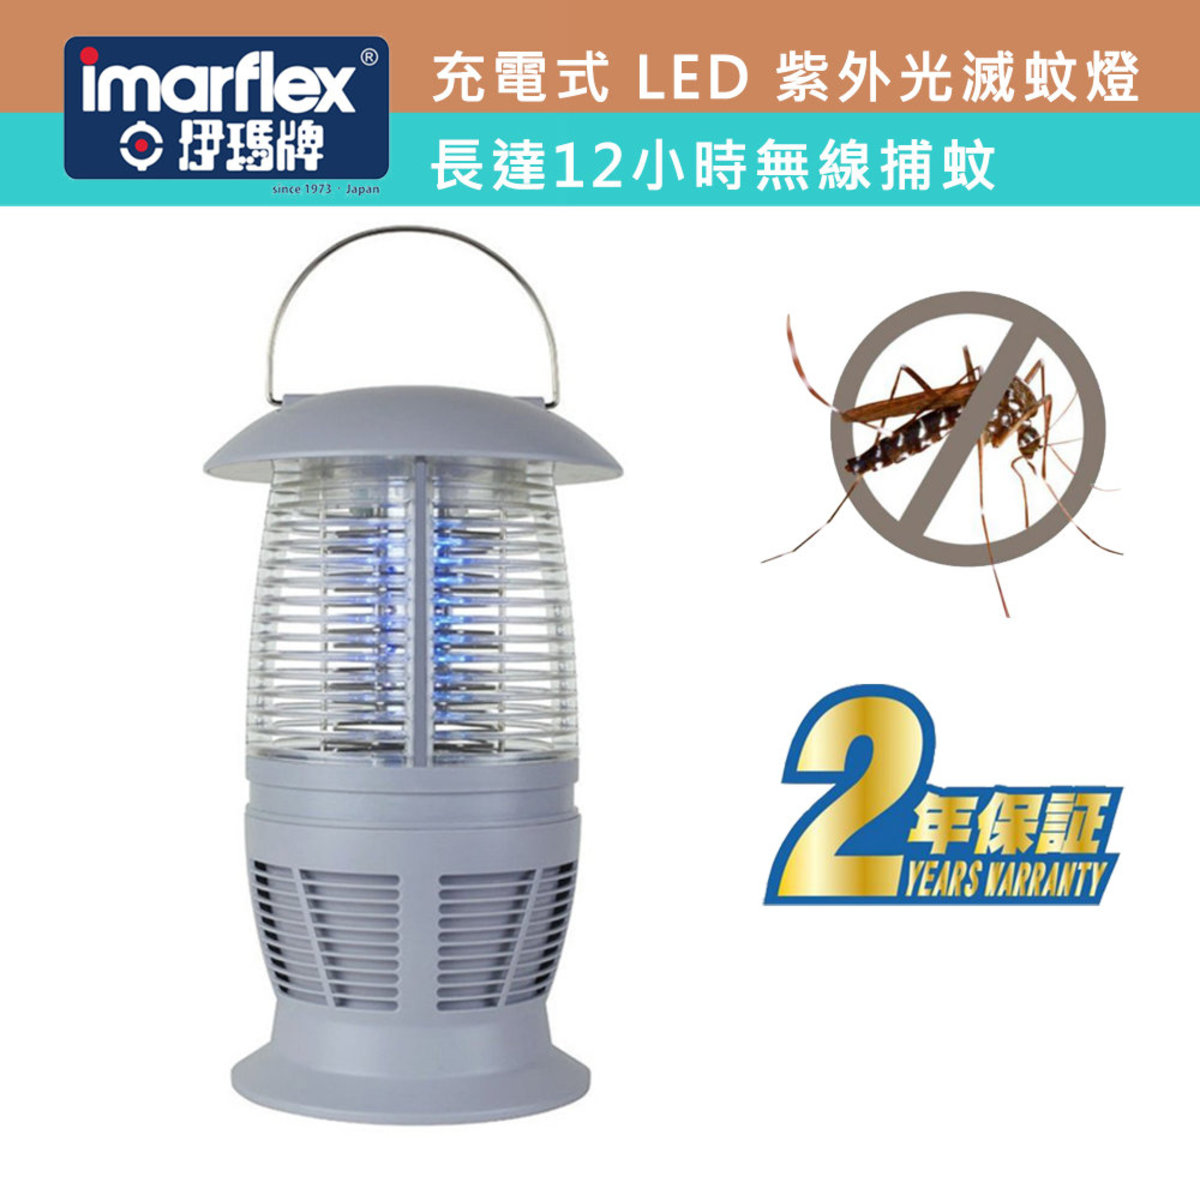 Rechargeable LED UV Insect Killer - IMK-05